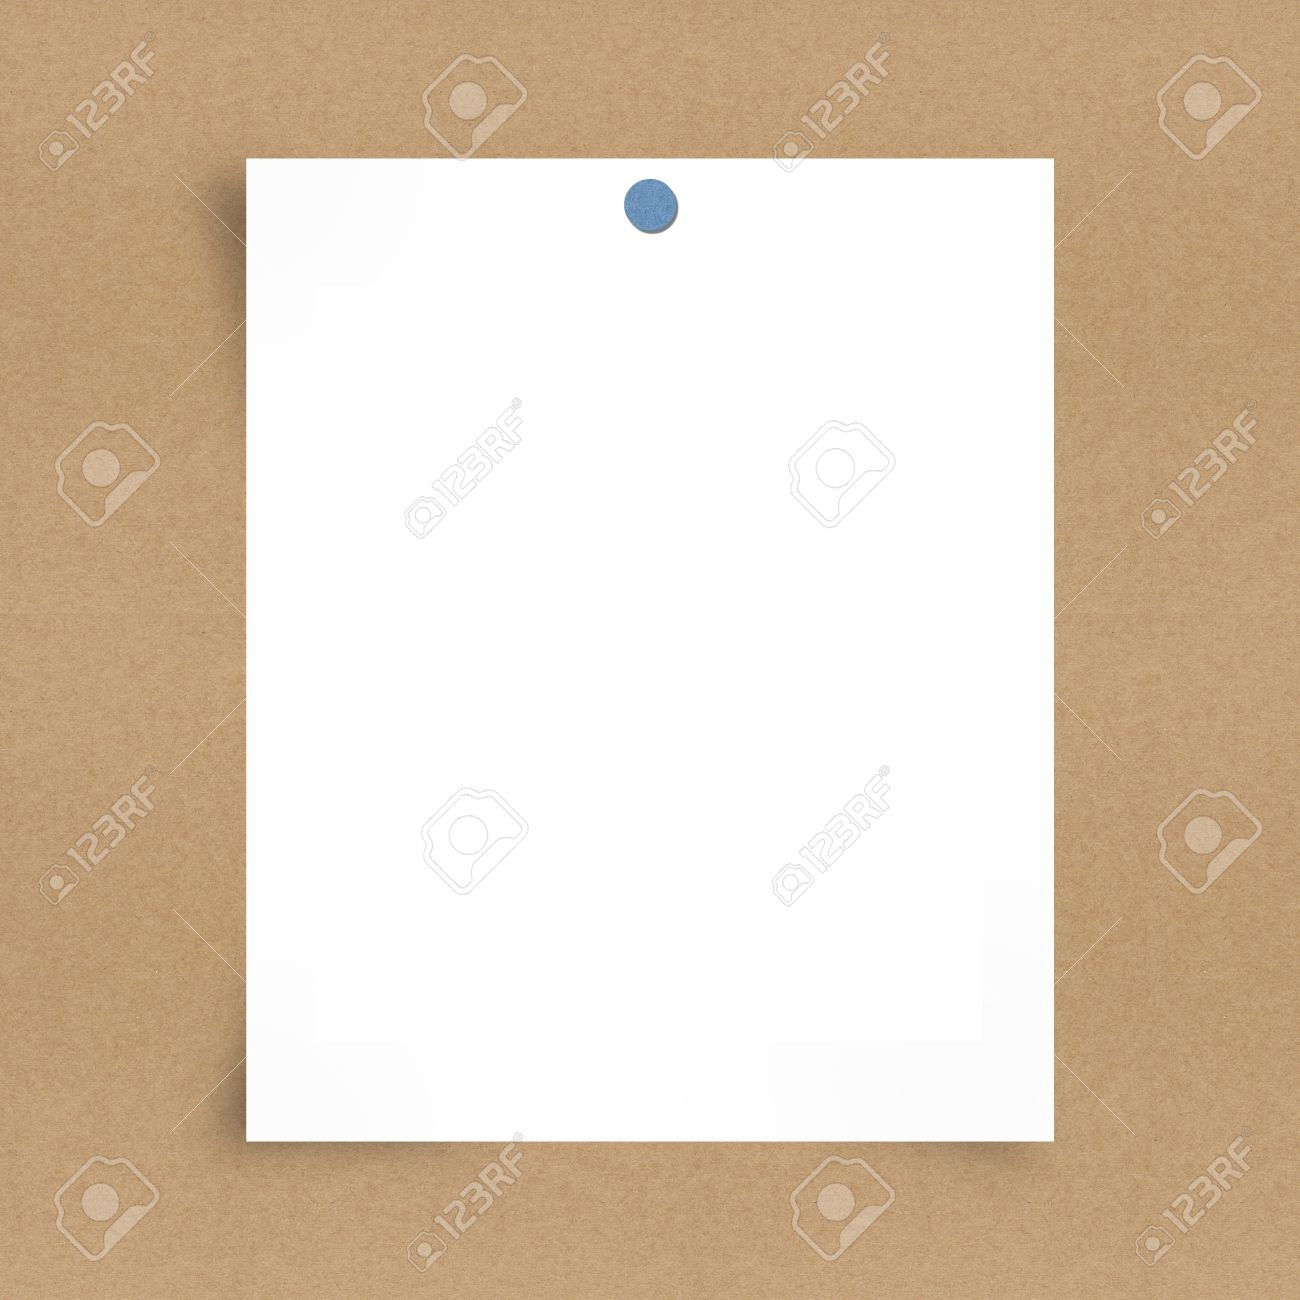 blank note paper on board background stock photo picture and blank note paper on board background stock photo 12113974